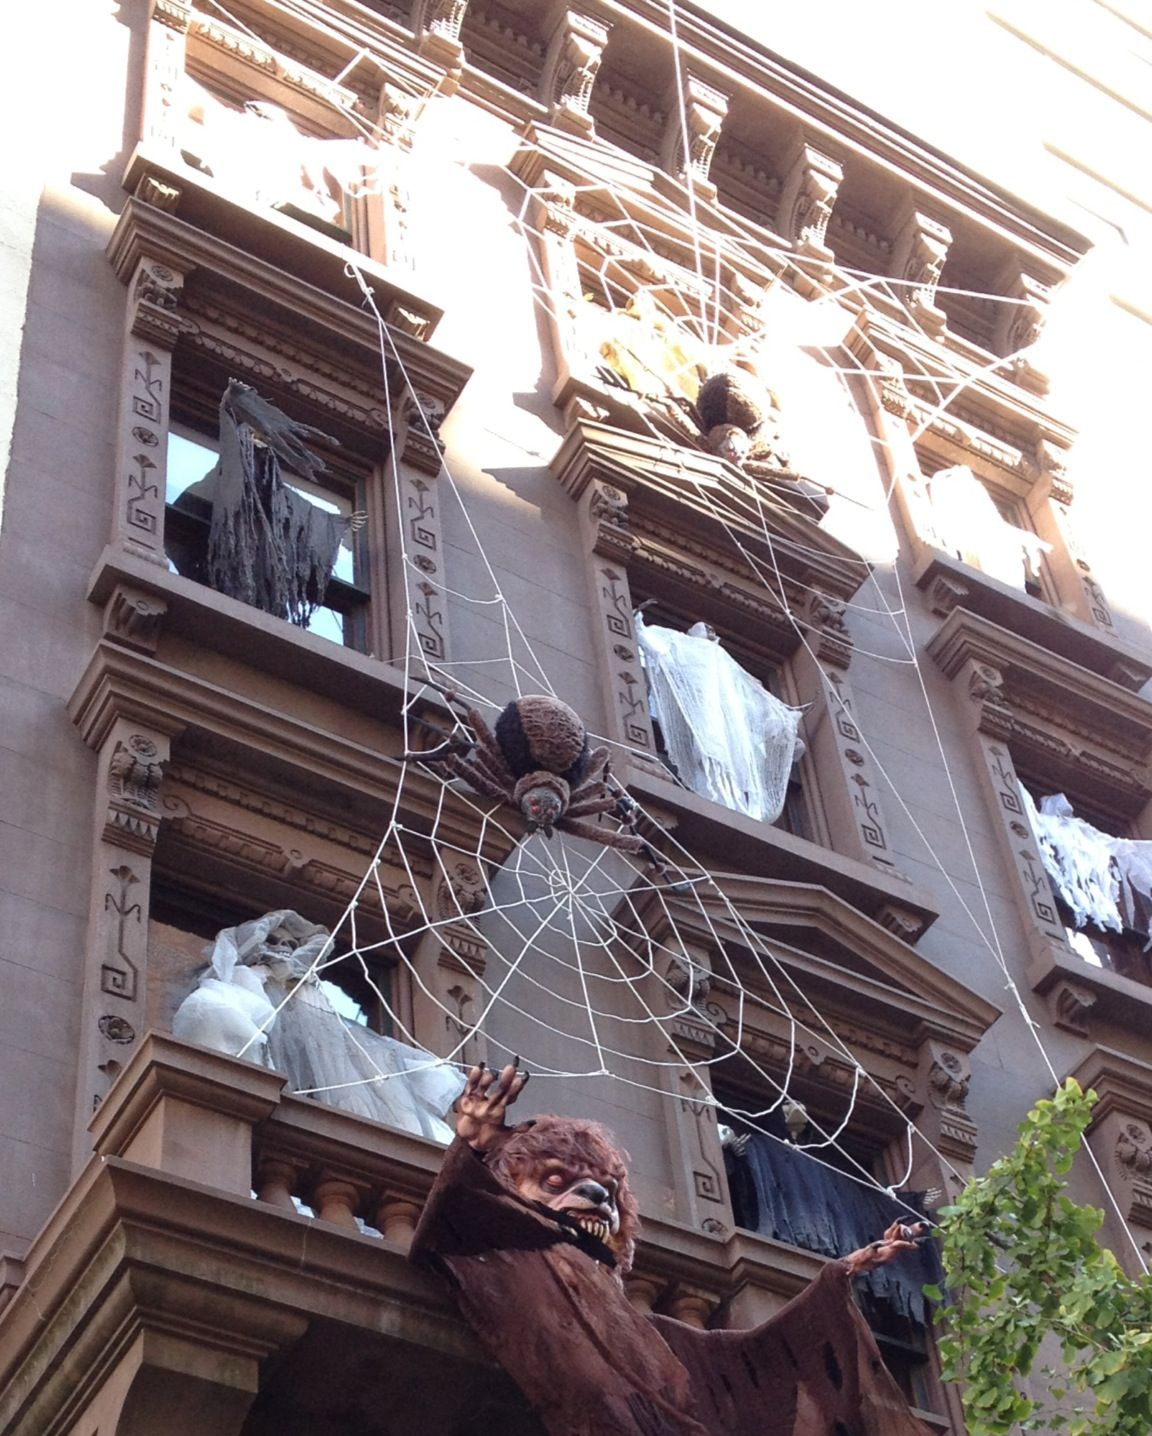 Brownstone Decorating Ideas: Halloween Decorations On A New York City Brownstone.